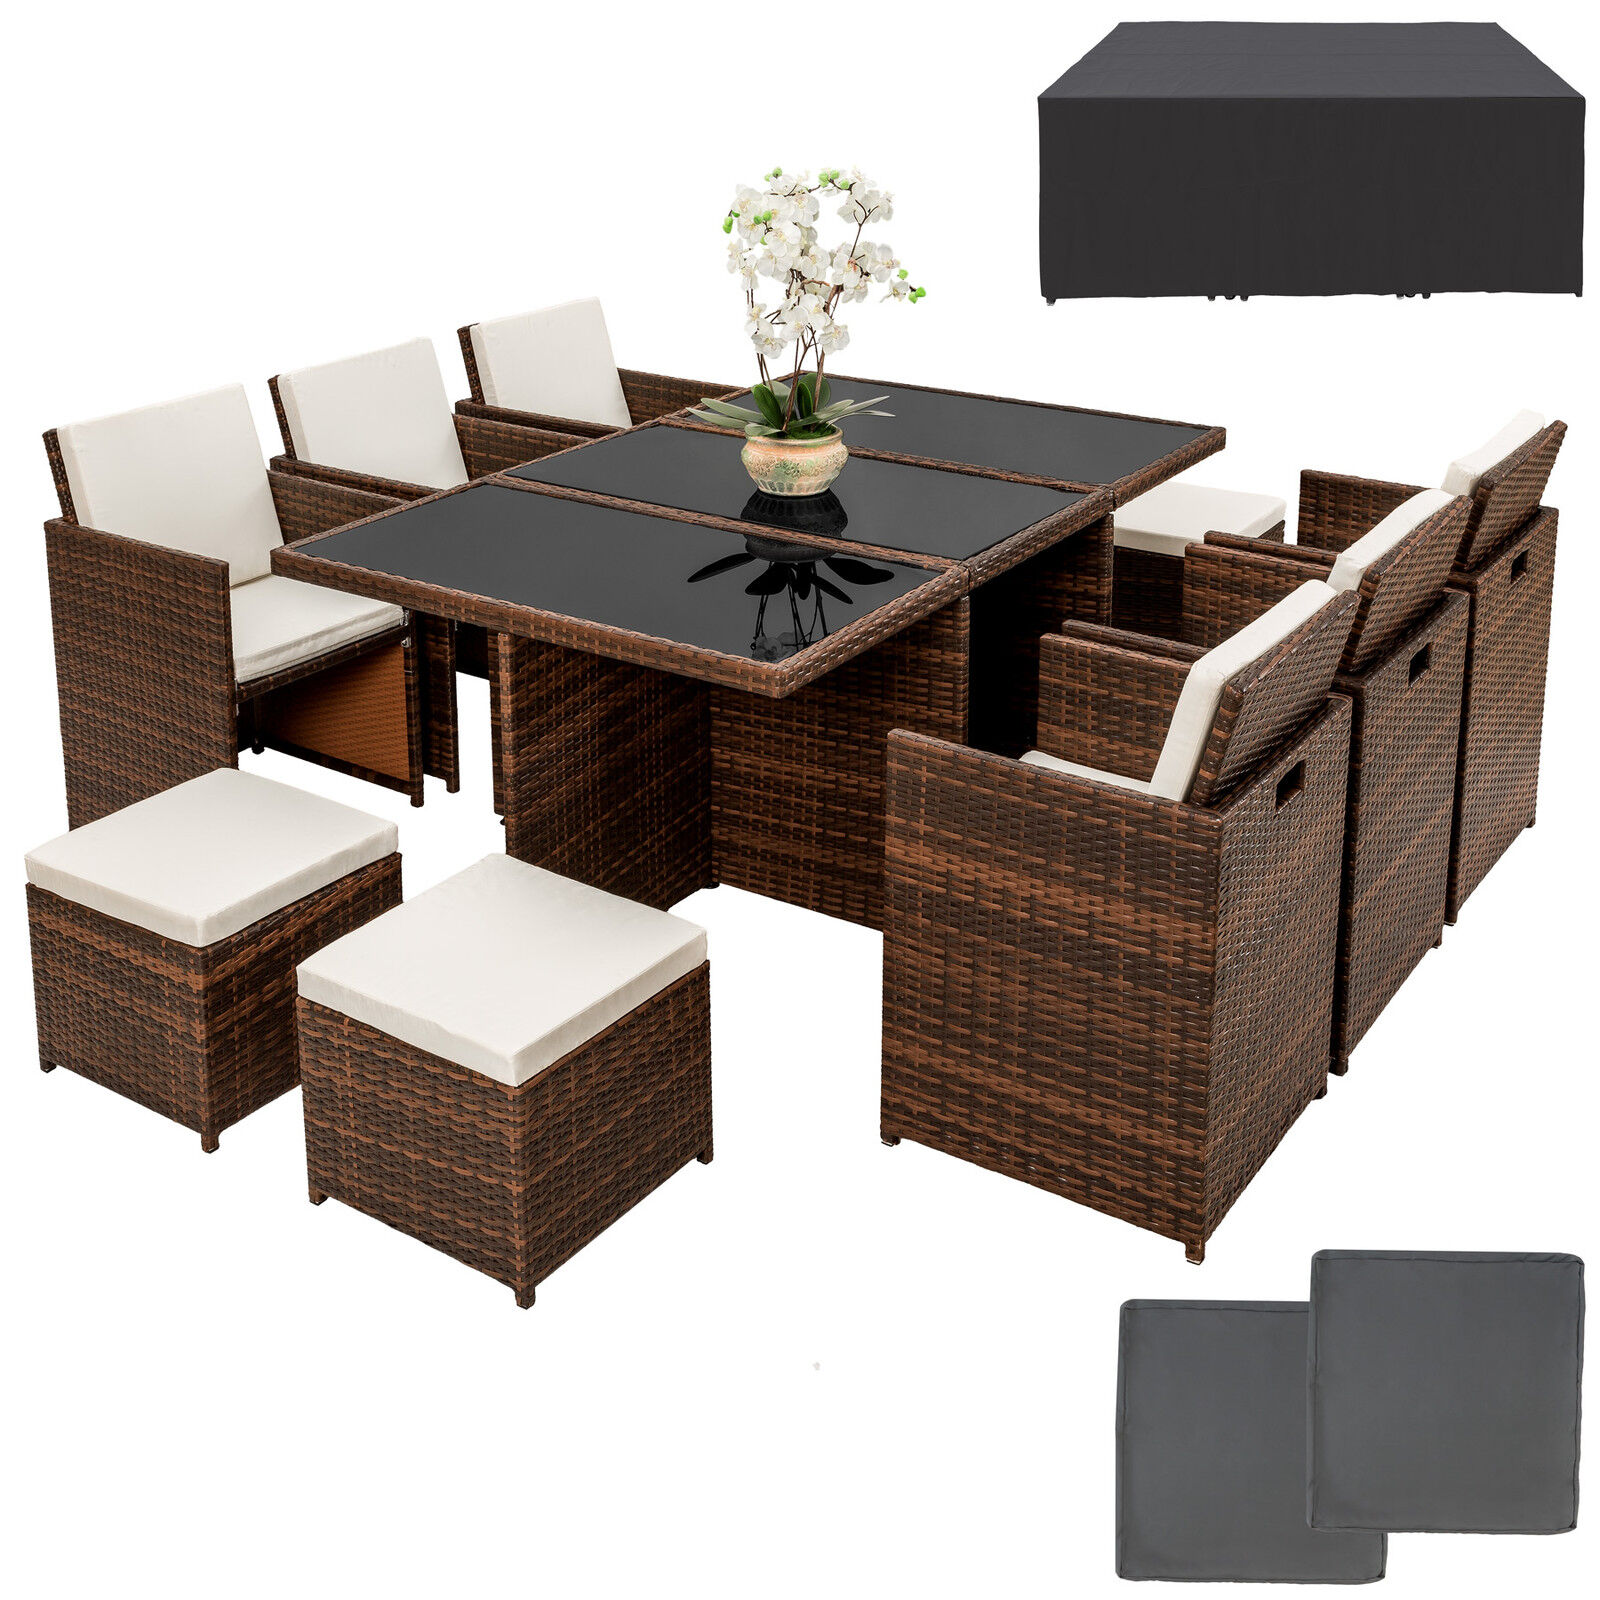 poly rattan gartenm bel set garnitur sitzgarnitur aluminium st hle tisch hocker eur 689 99. Black Bedroom Furniture Sets. Home Design Ideas